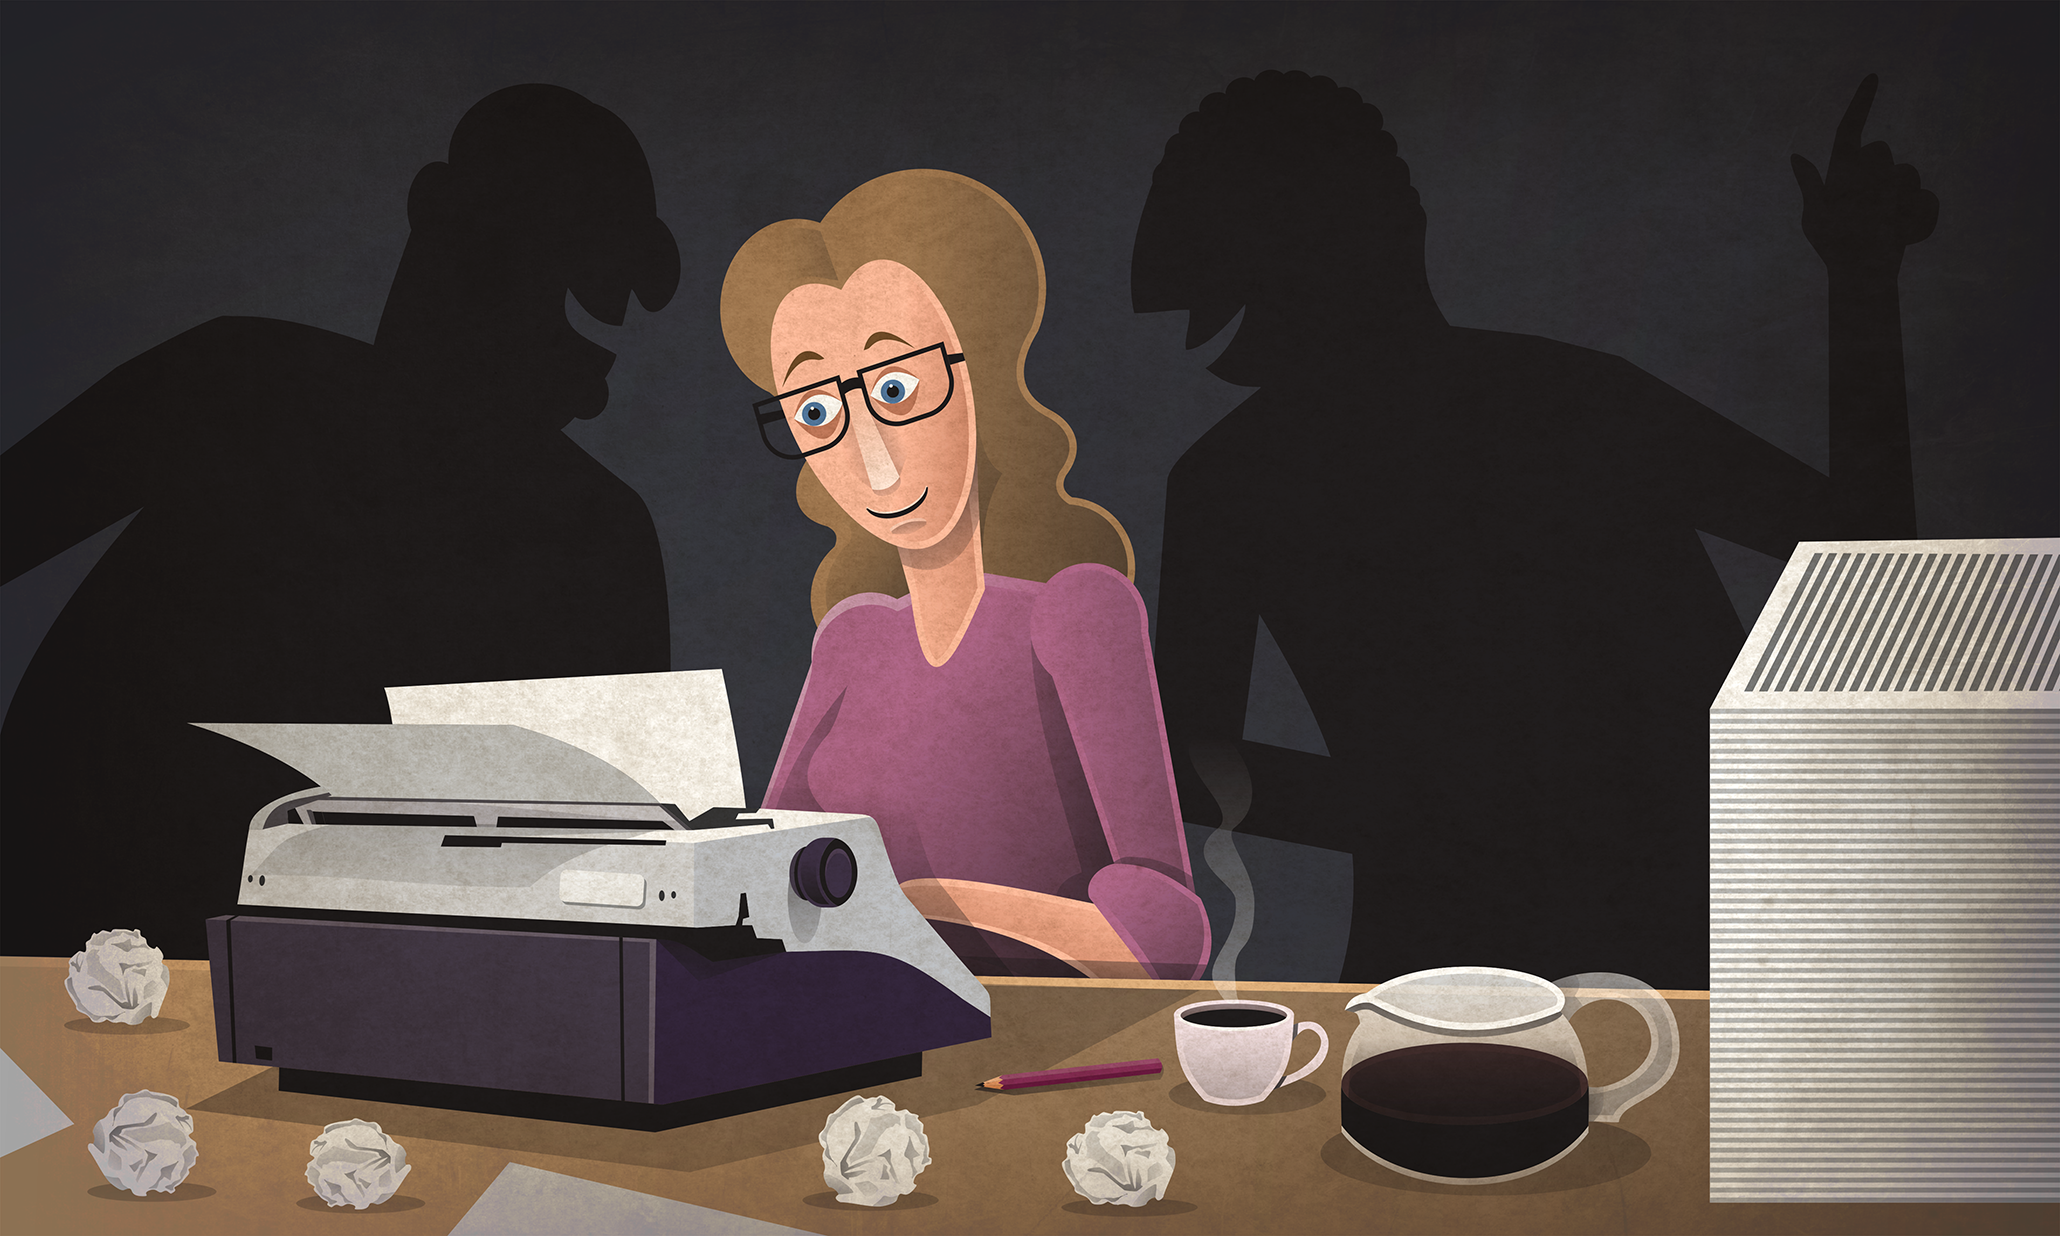 illustration of woman writing script on typewriter